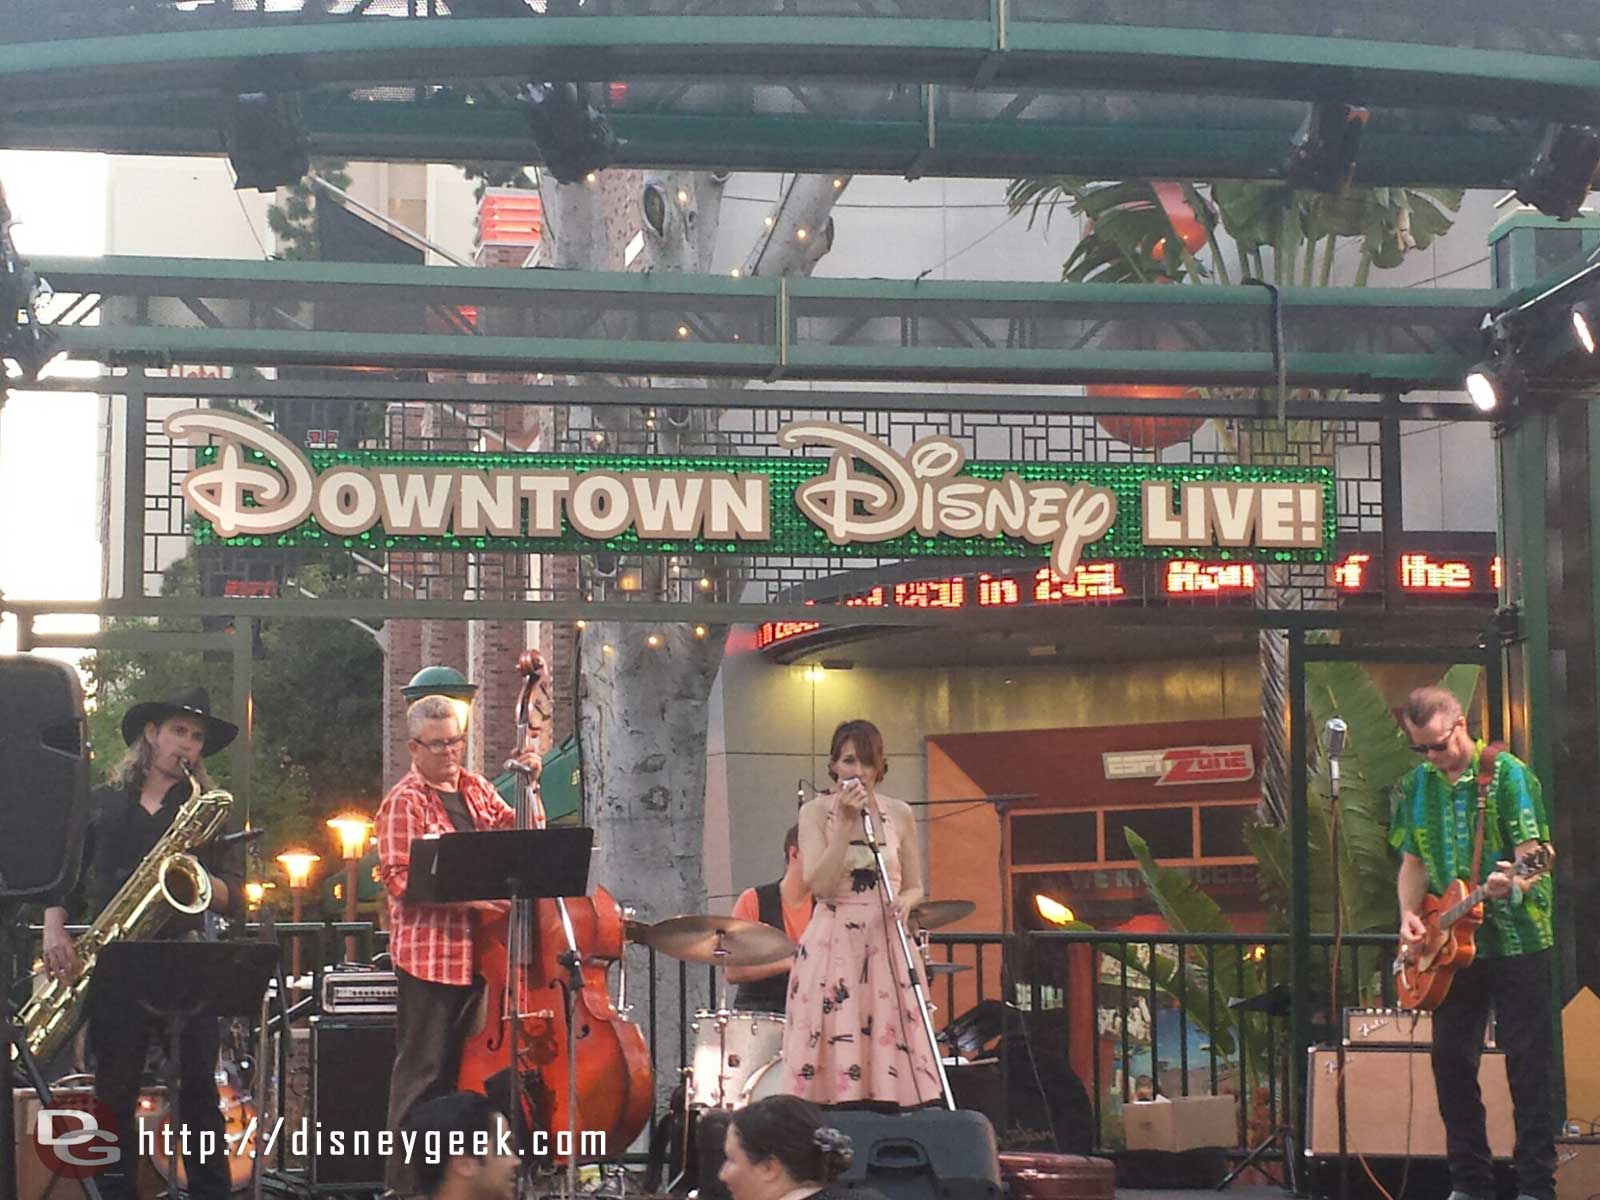 Maureen and the Mercury 5 performing in Downtown Disney tonight